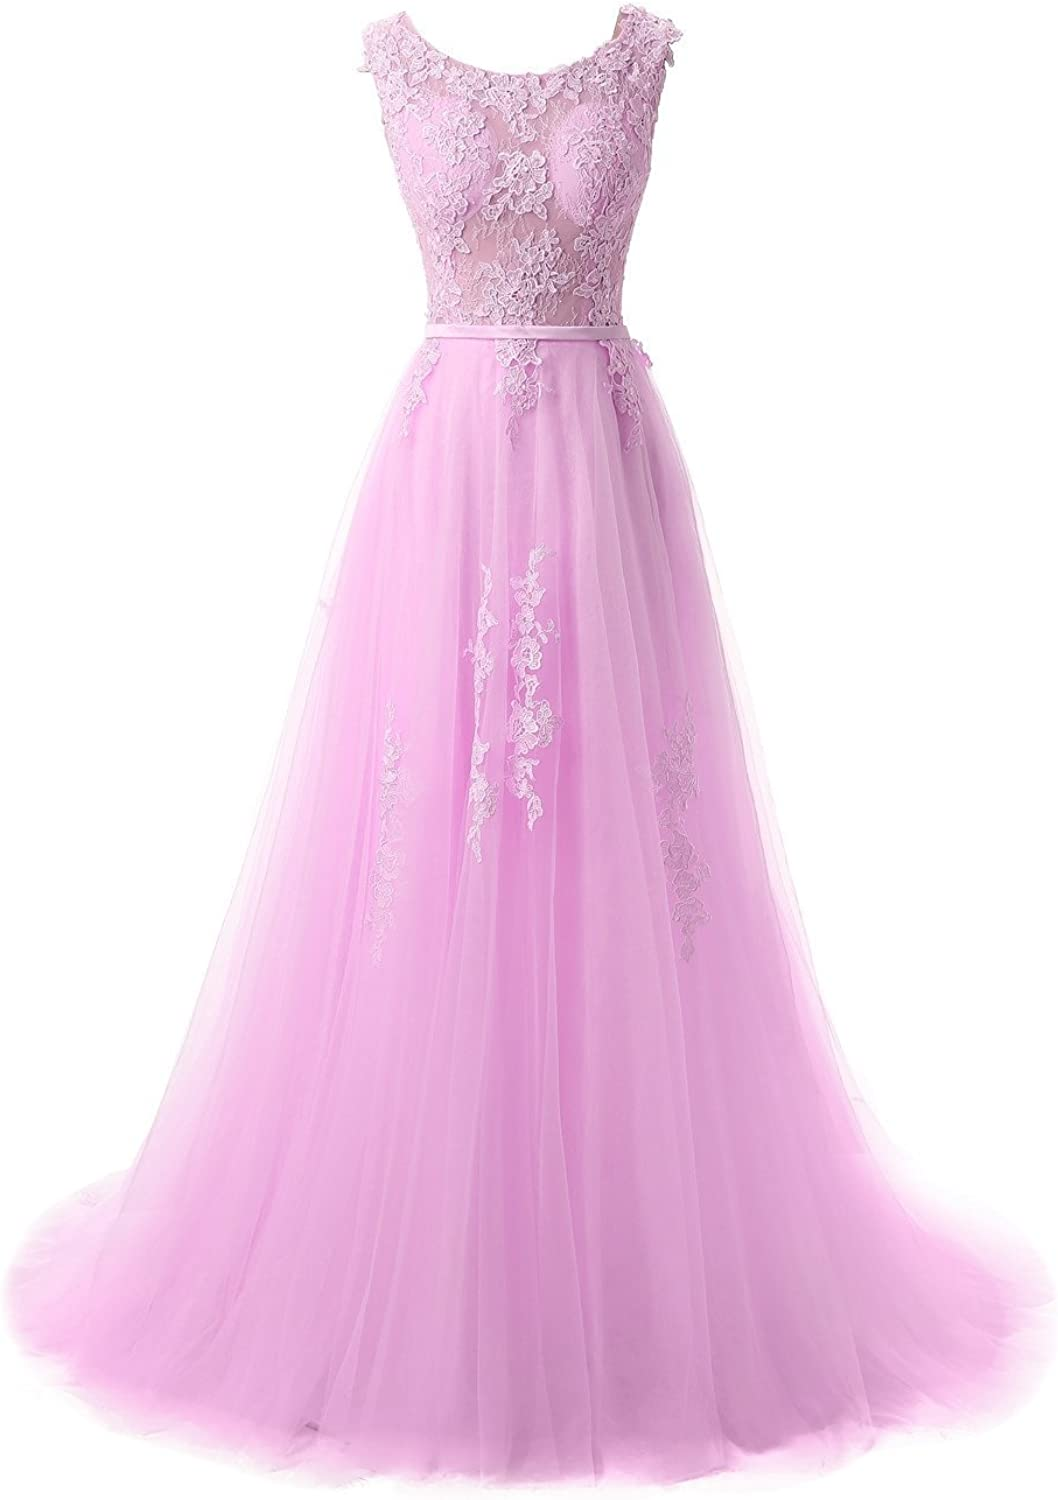 DressyMe Women's Tulle Wedding Dresses Prom Gown Aline RoundNeck